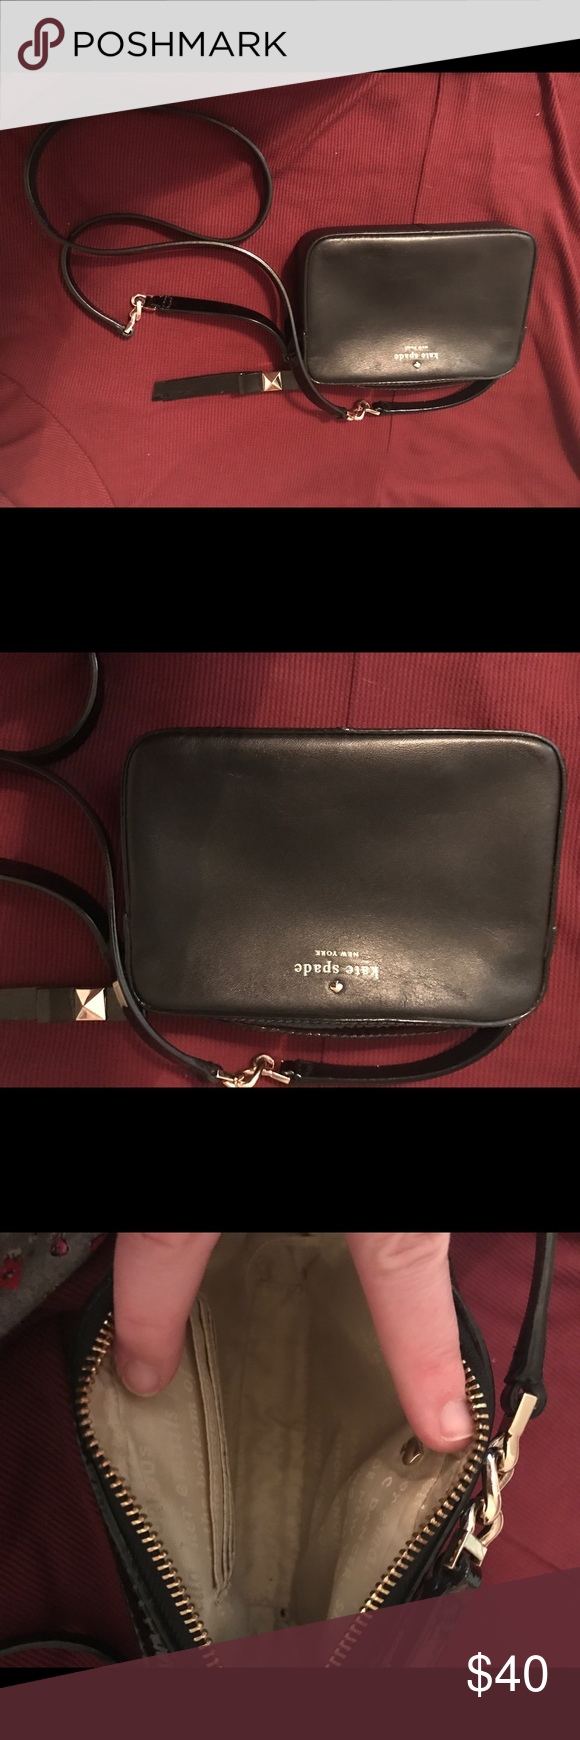 Kate Spade Small Black Crossbody Small black crossbody, really good condition. There is one scratch that I've shown. It's really not noticeable, but I wanted to make sure the pic showed it. kate spade Bags Crossbody Bags